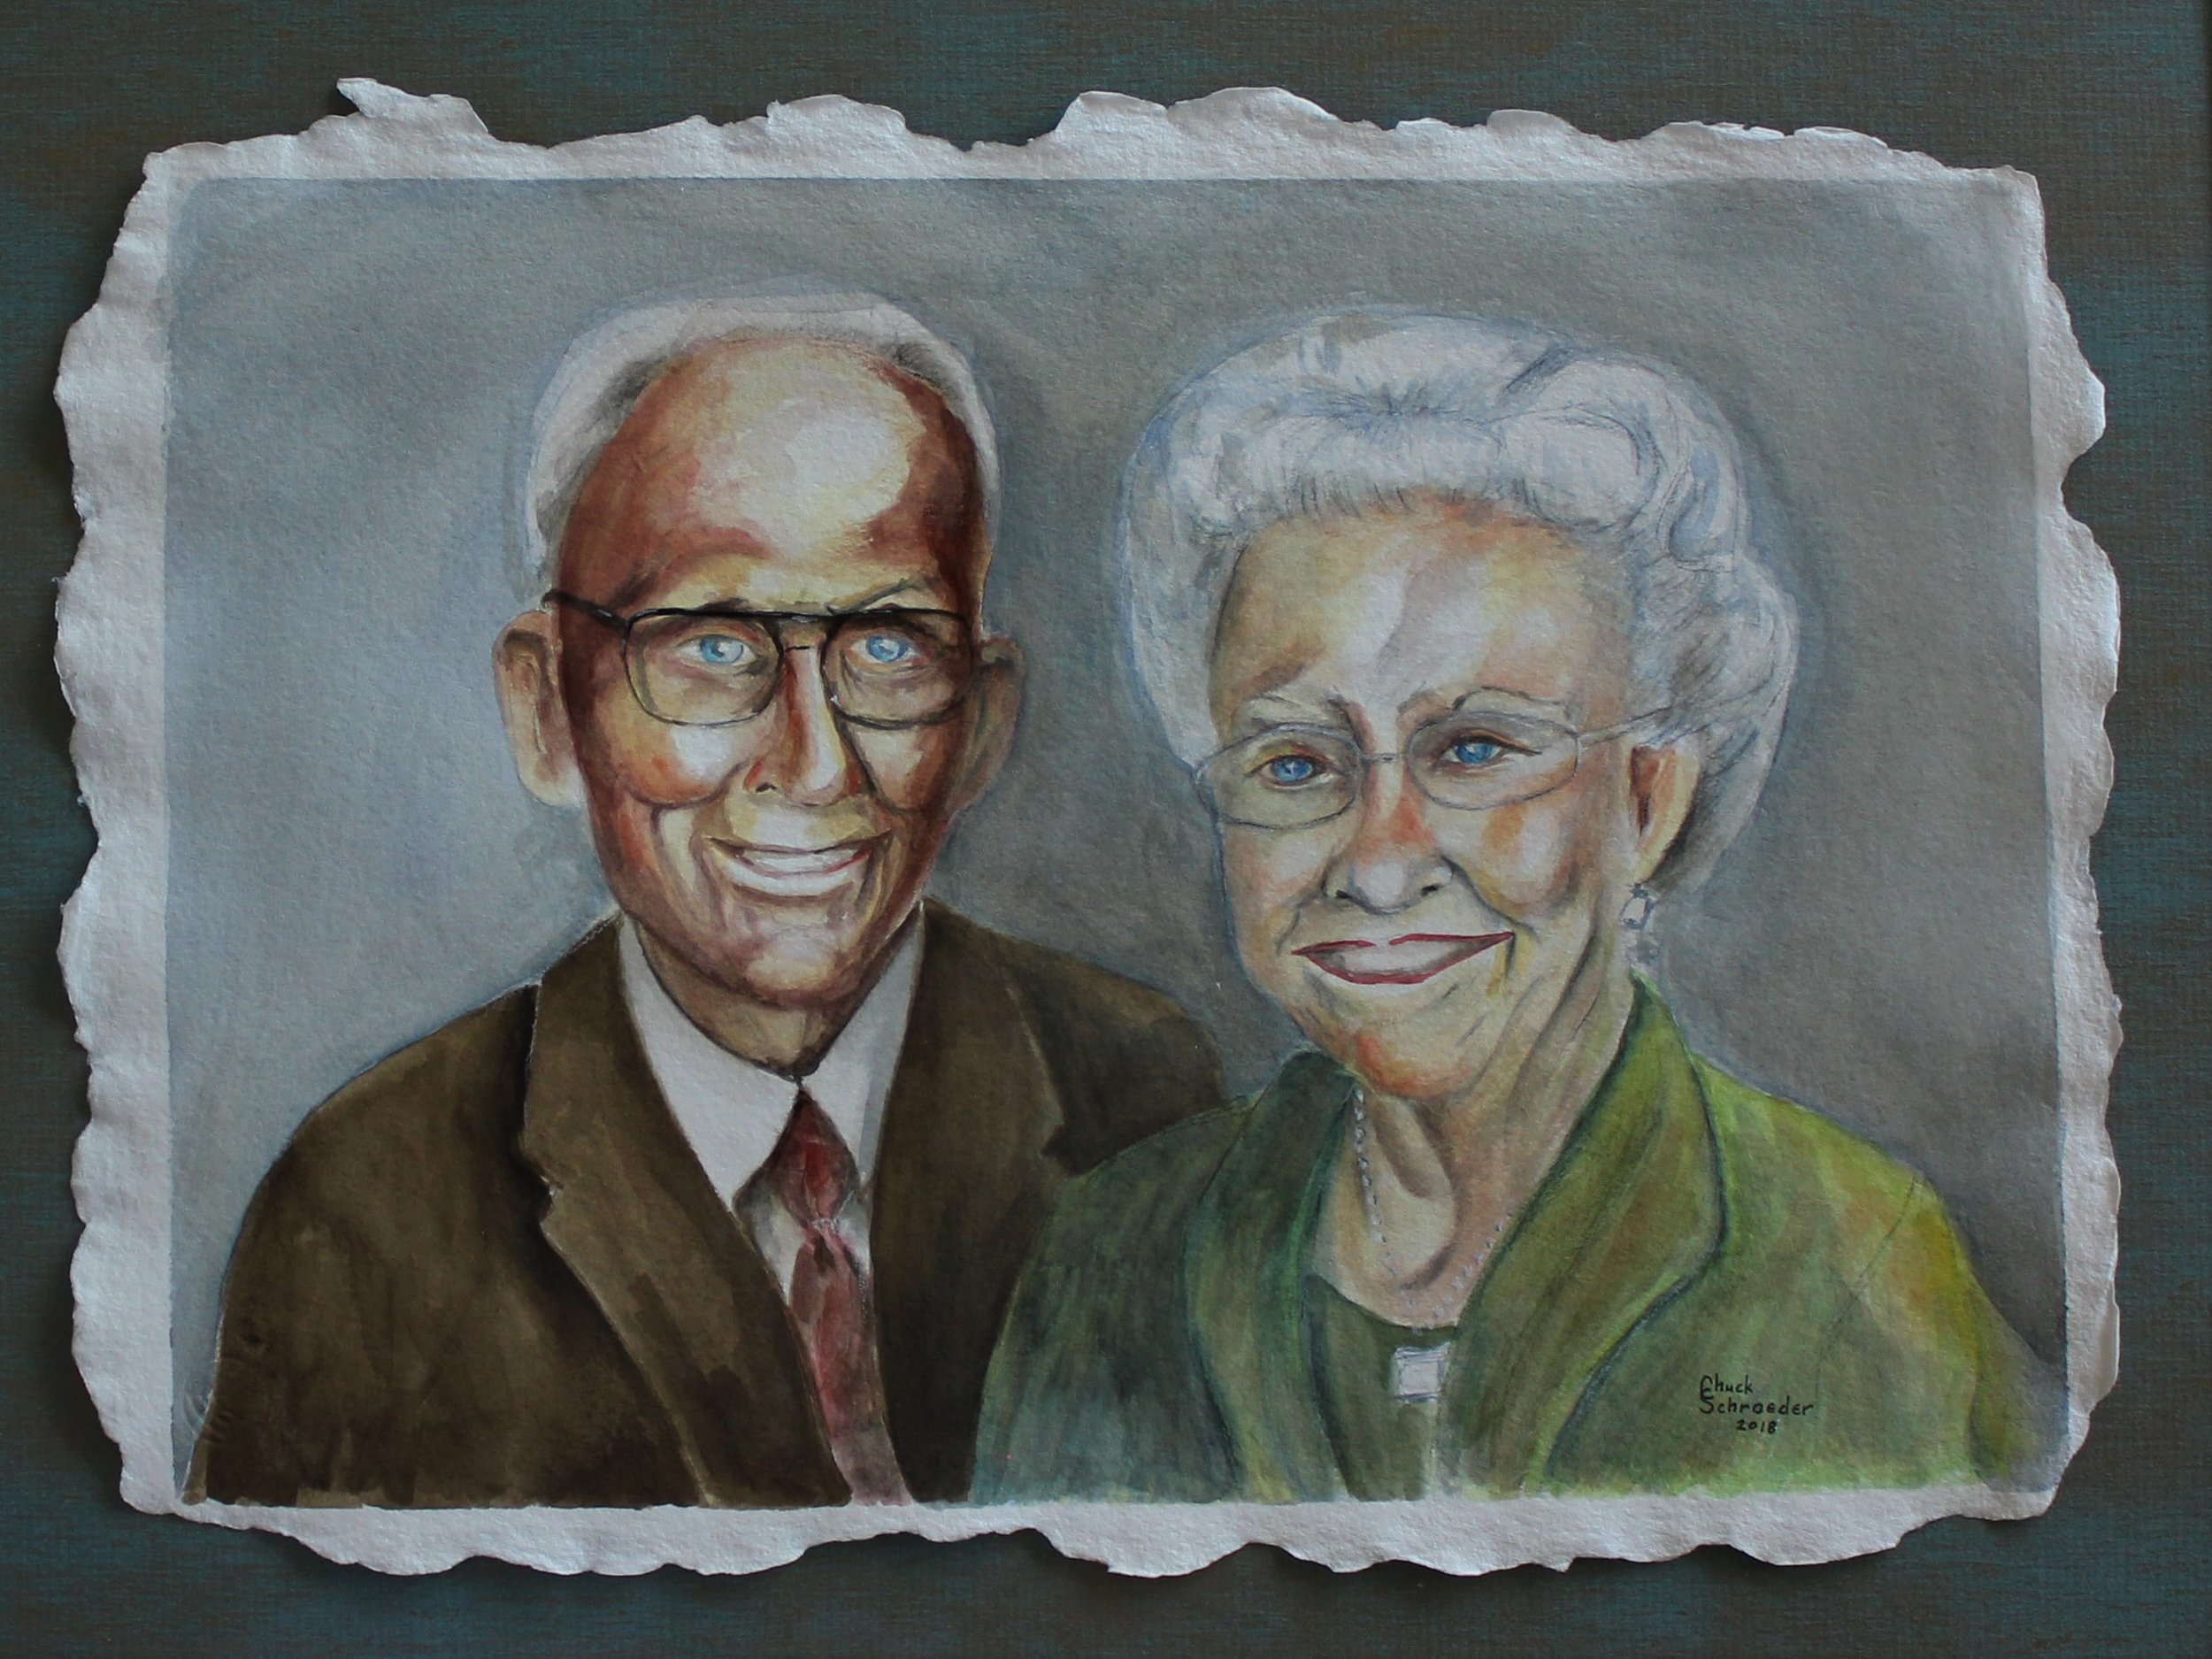 Clement and Mildred Knobbe-min.JPG